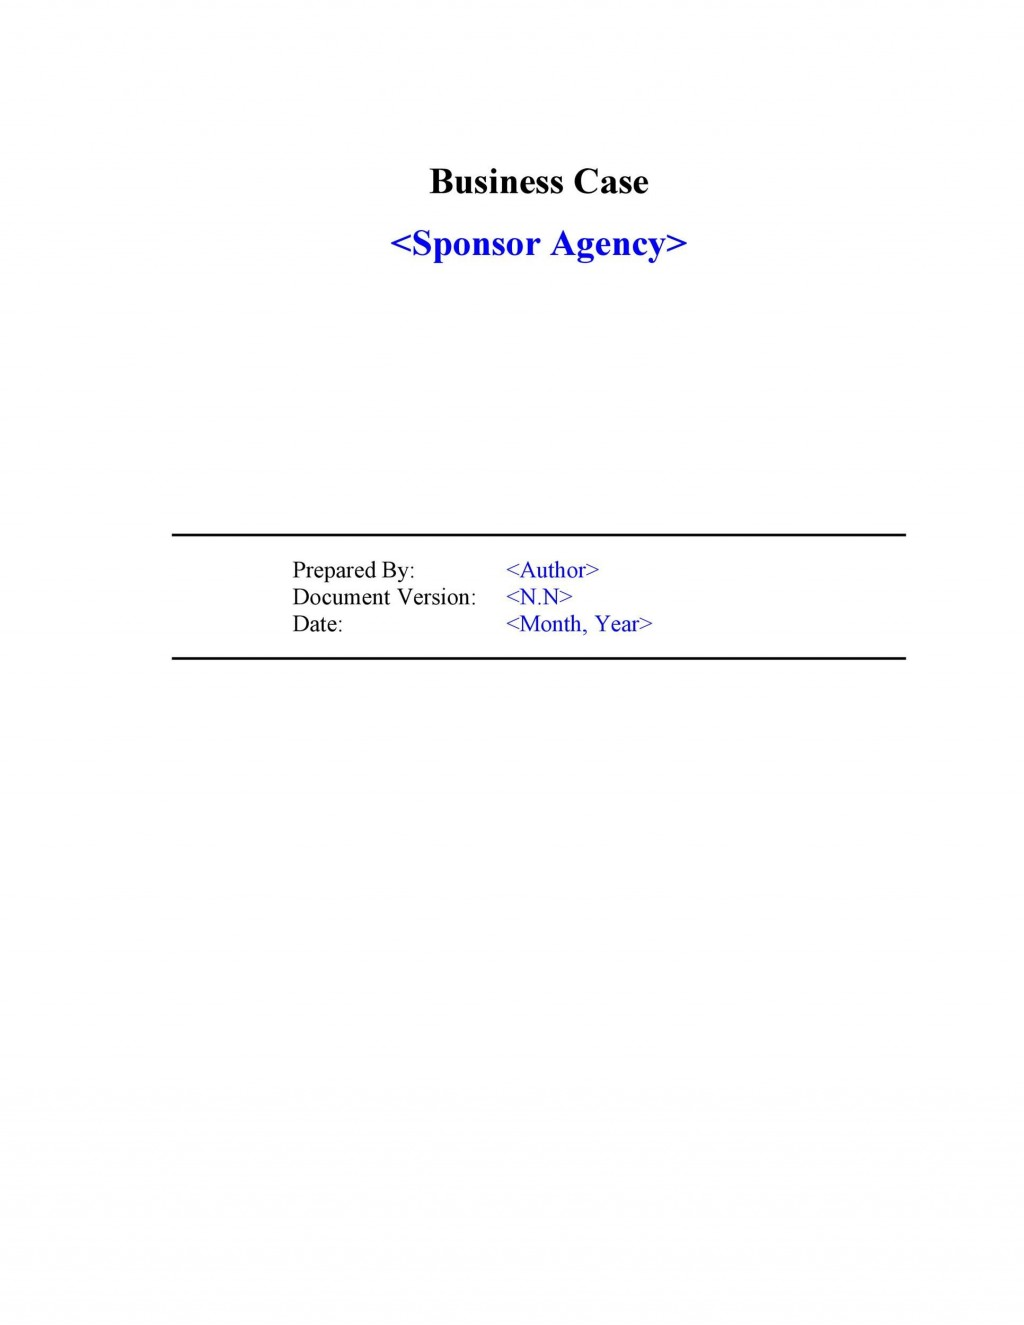 005 Impressive Simple Busines Case Template Image  Ppt Proposal Example PdfLarge